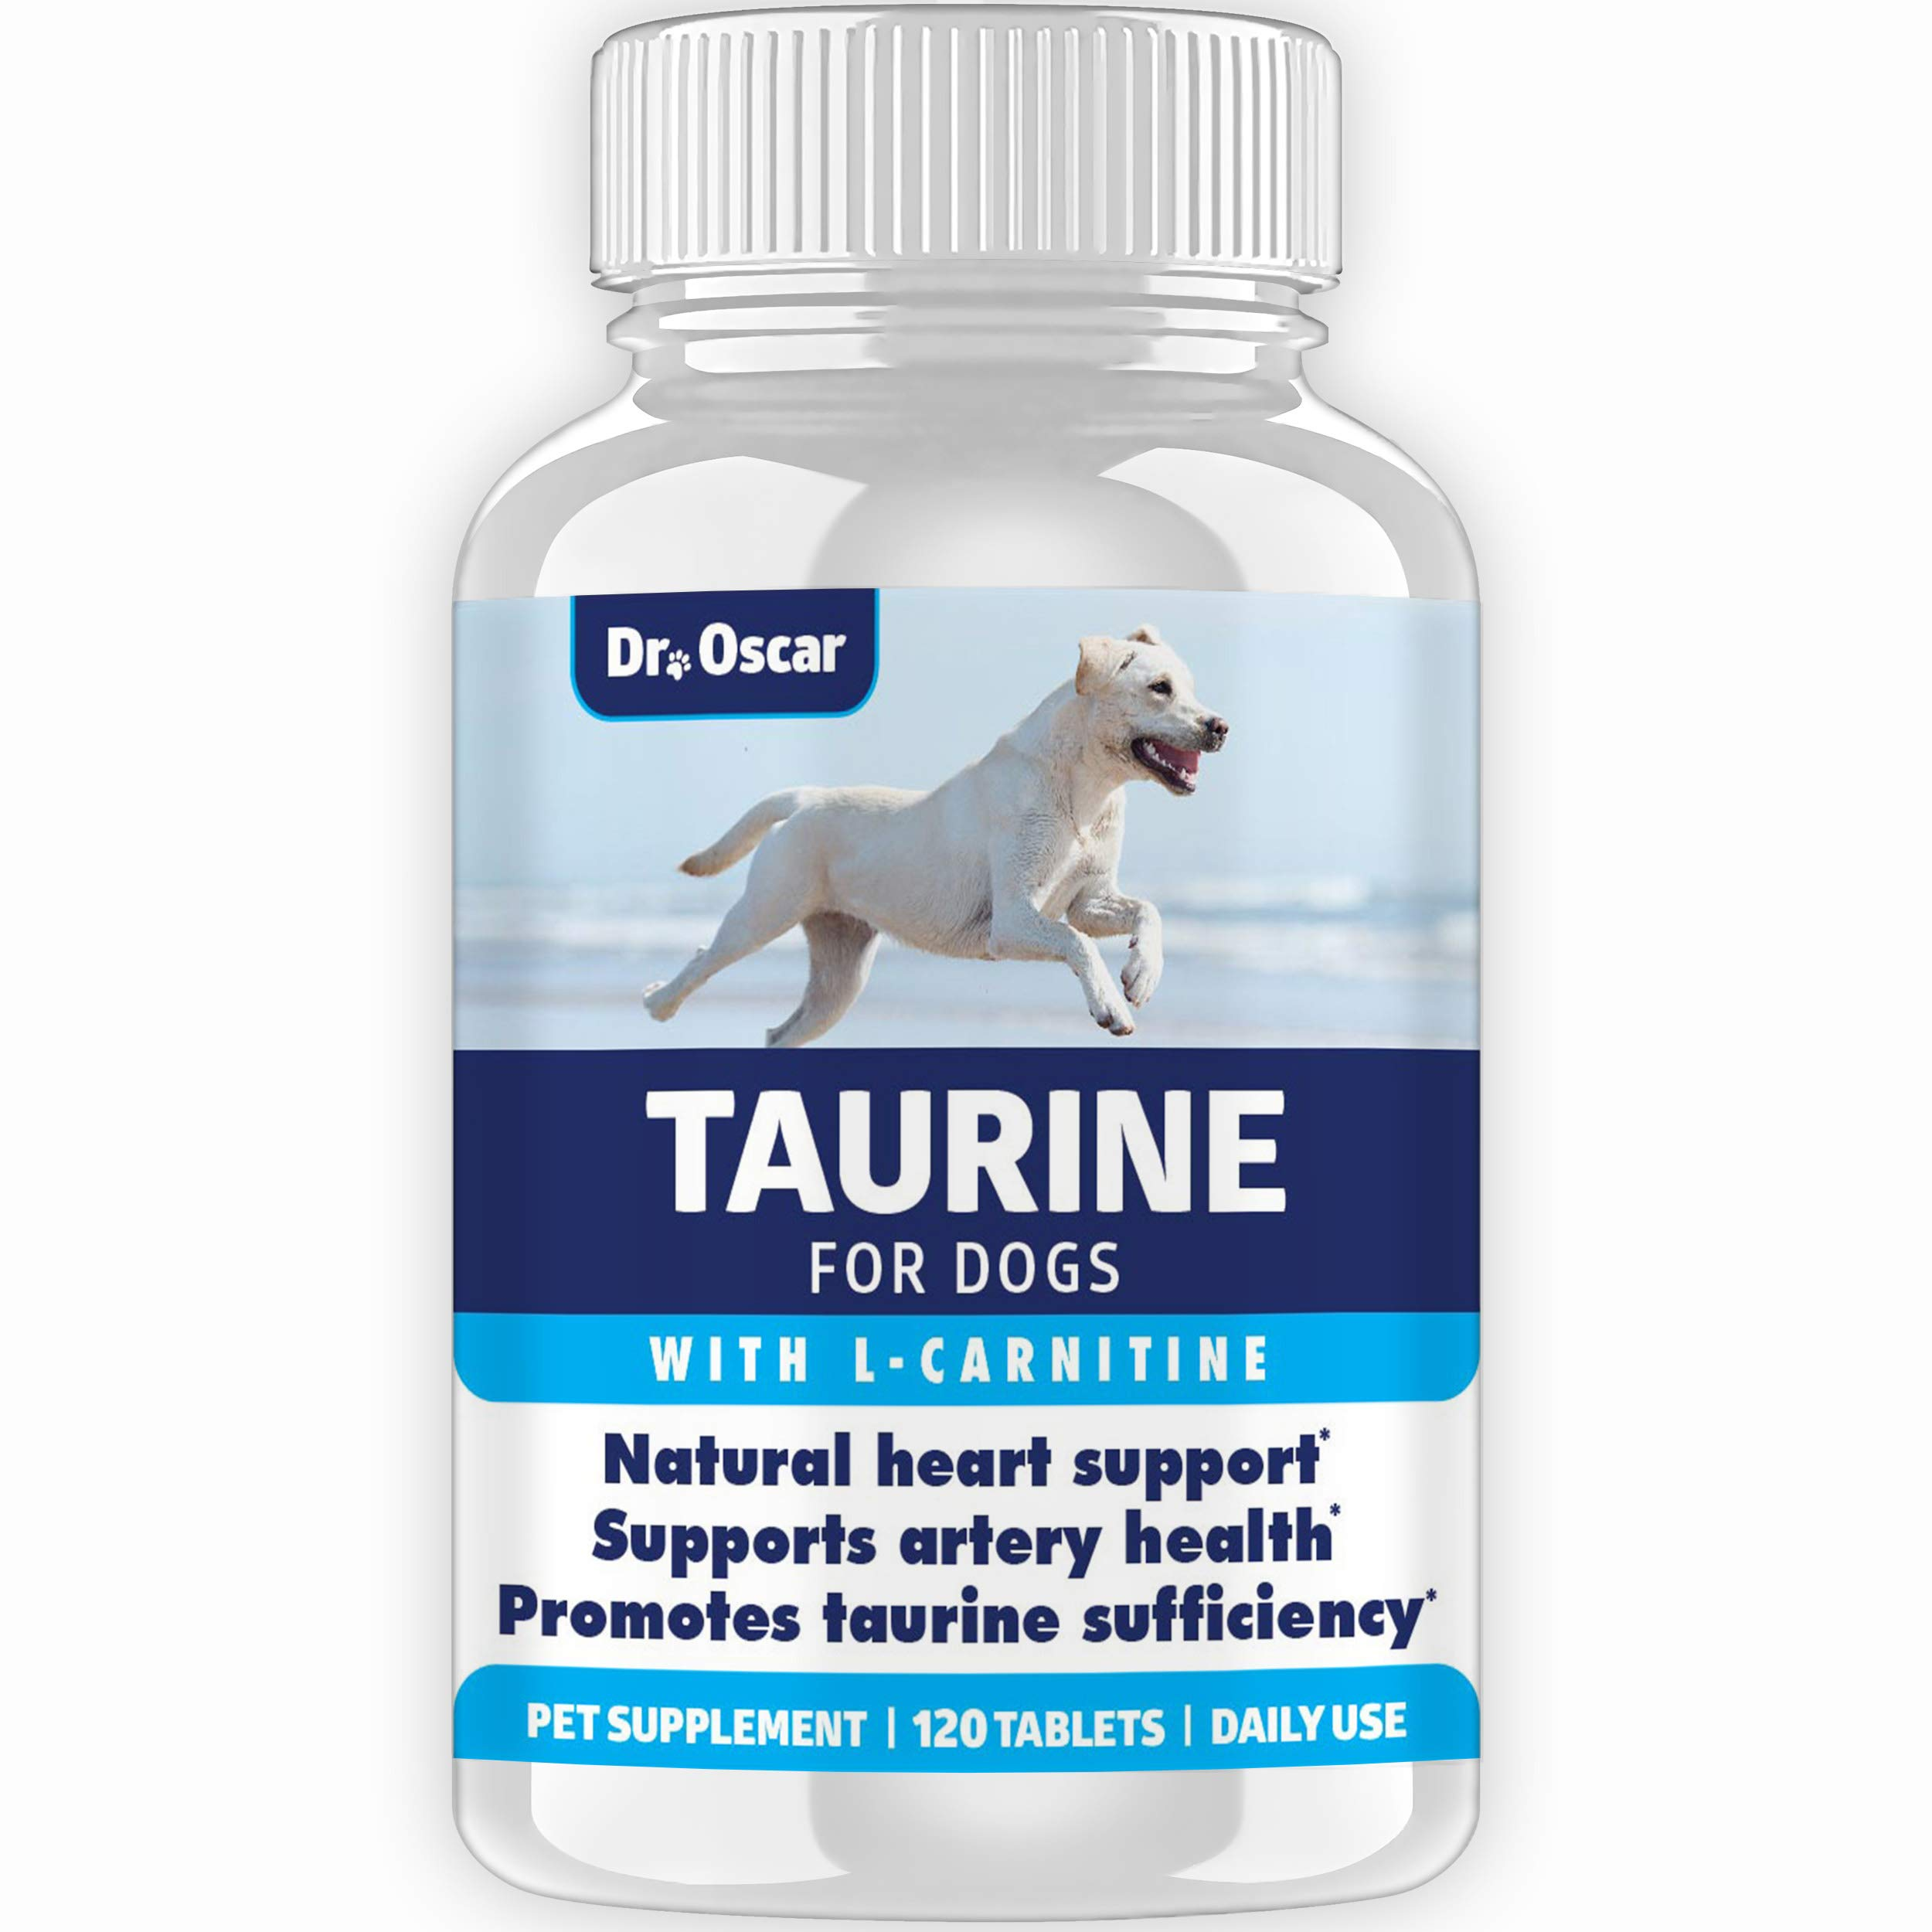 New Taurine Supplement for Dogs with L Carnitine for Better Heart Support for Dogs. 2X More Taurine vs. Most Competitors, 120 Tablets, USA, Safe to Use with Medication, Money Back Guarantee by Dr. Oscar